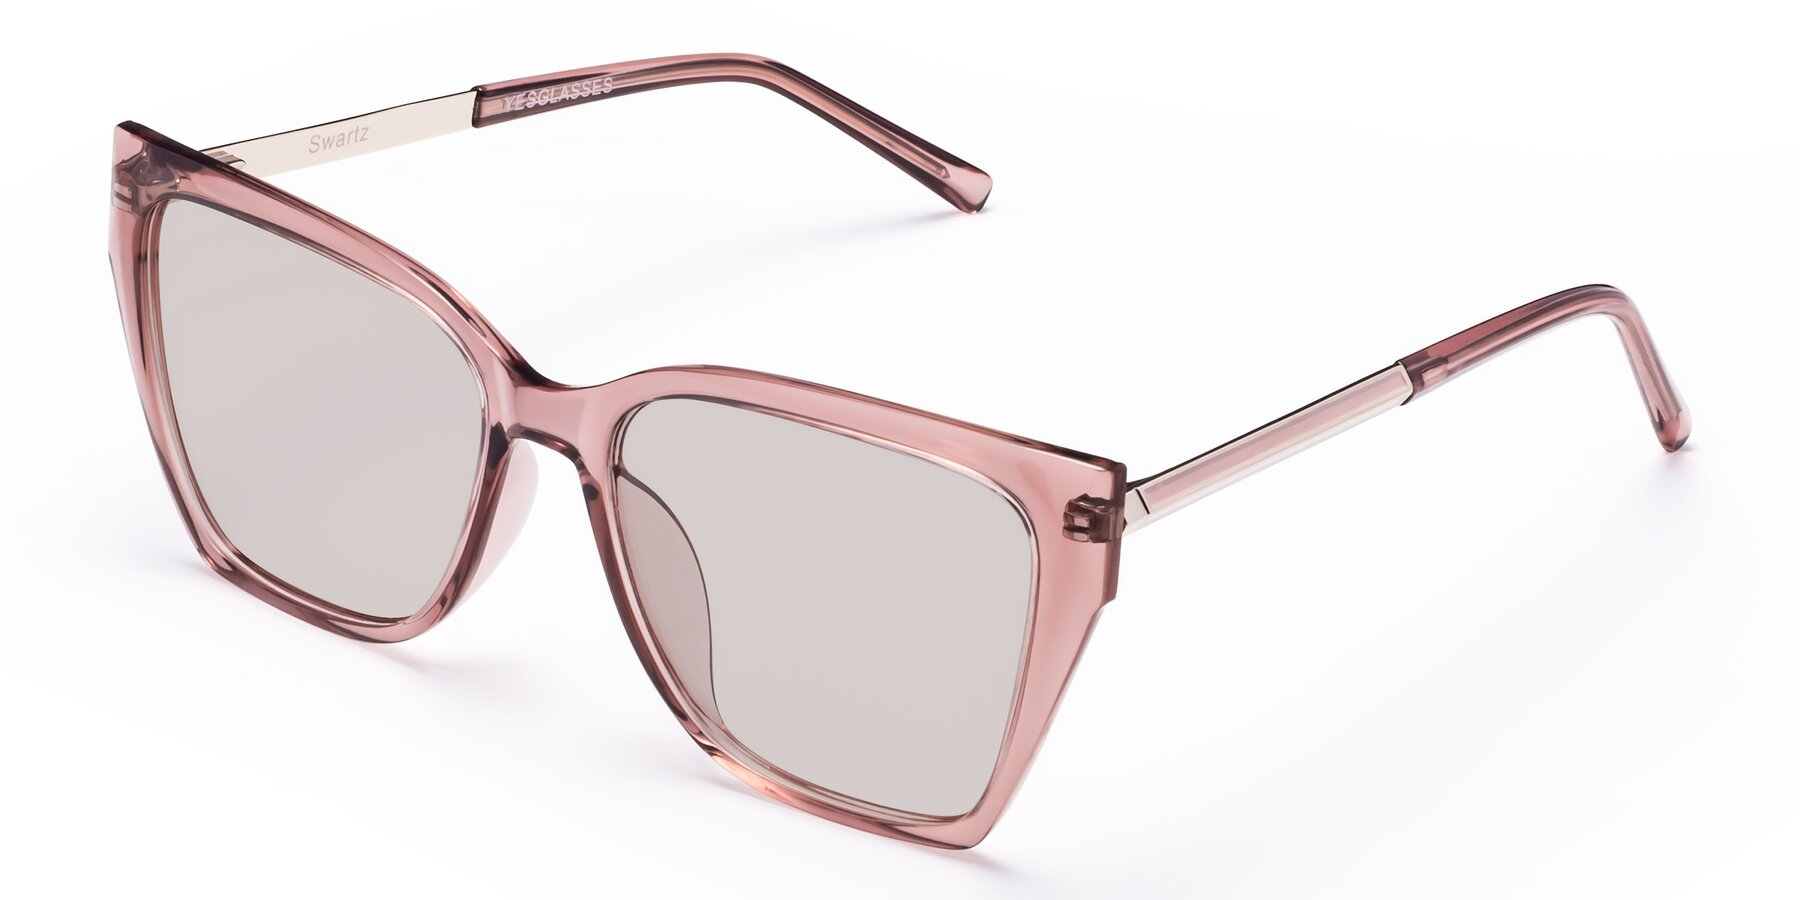 Angle of Swartz in Grape with Light Brown Tinted Lenses